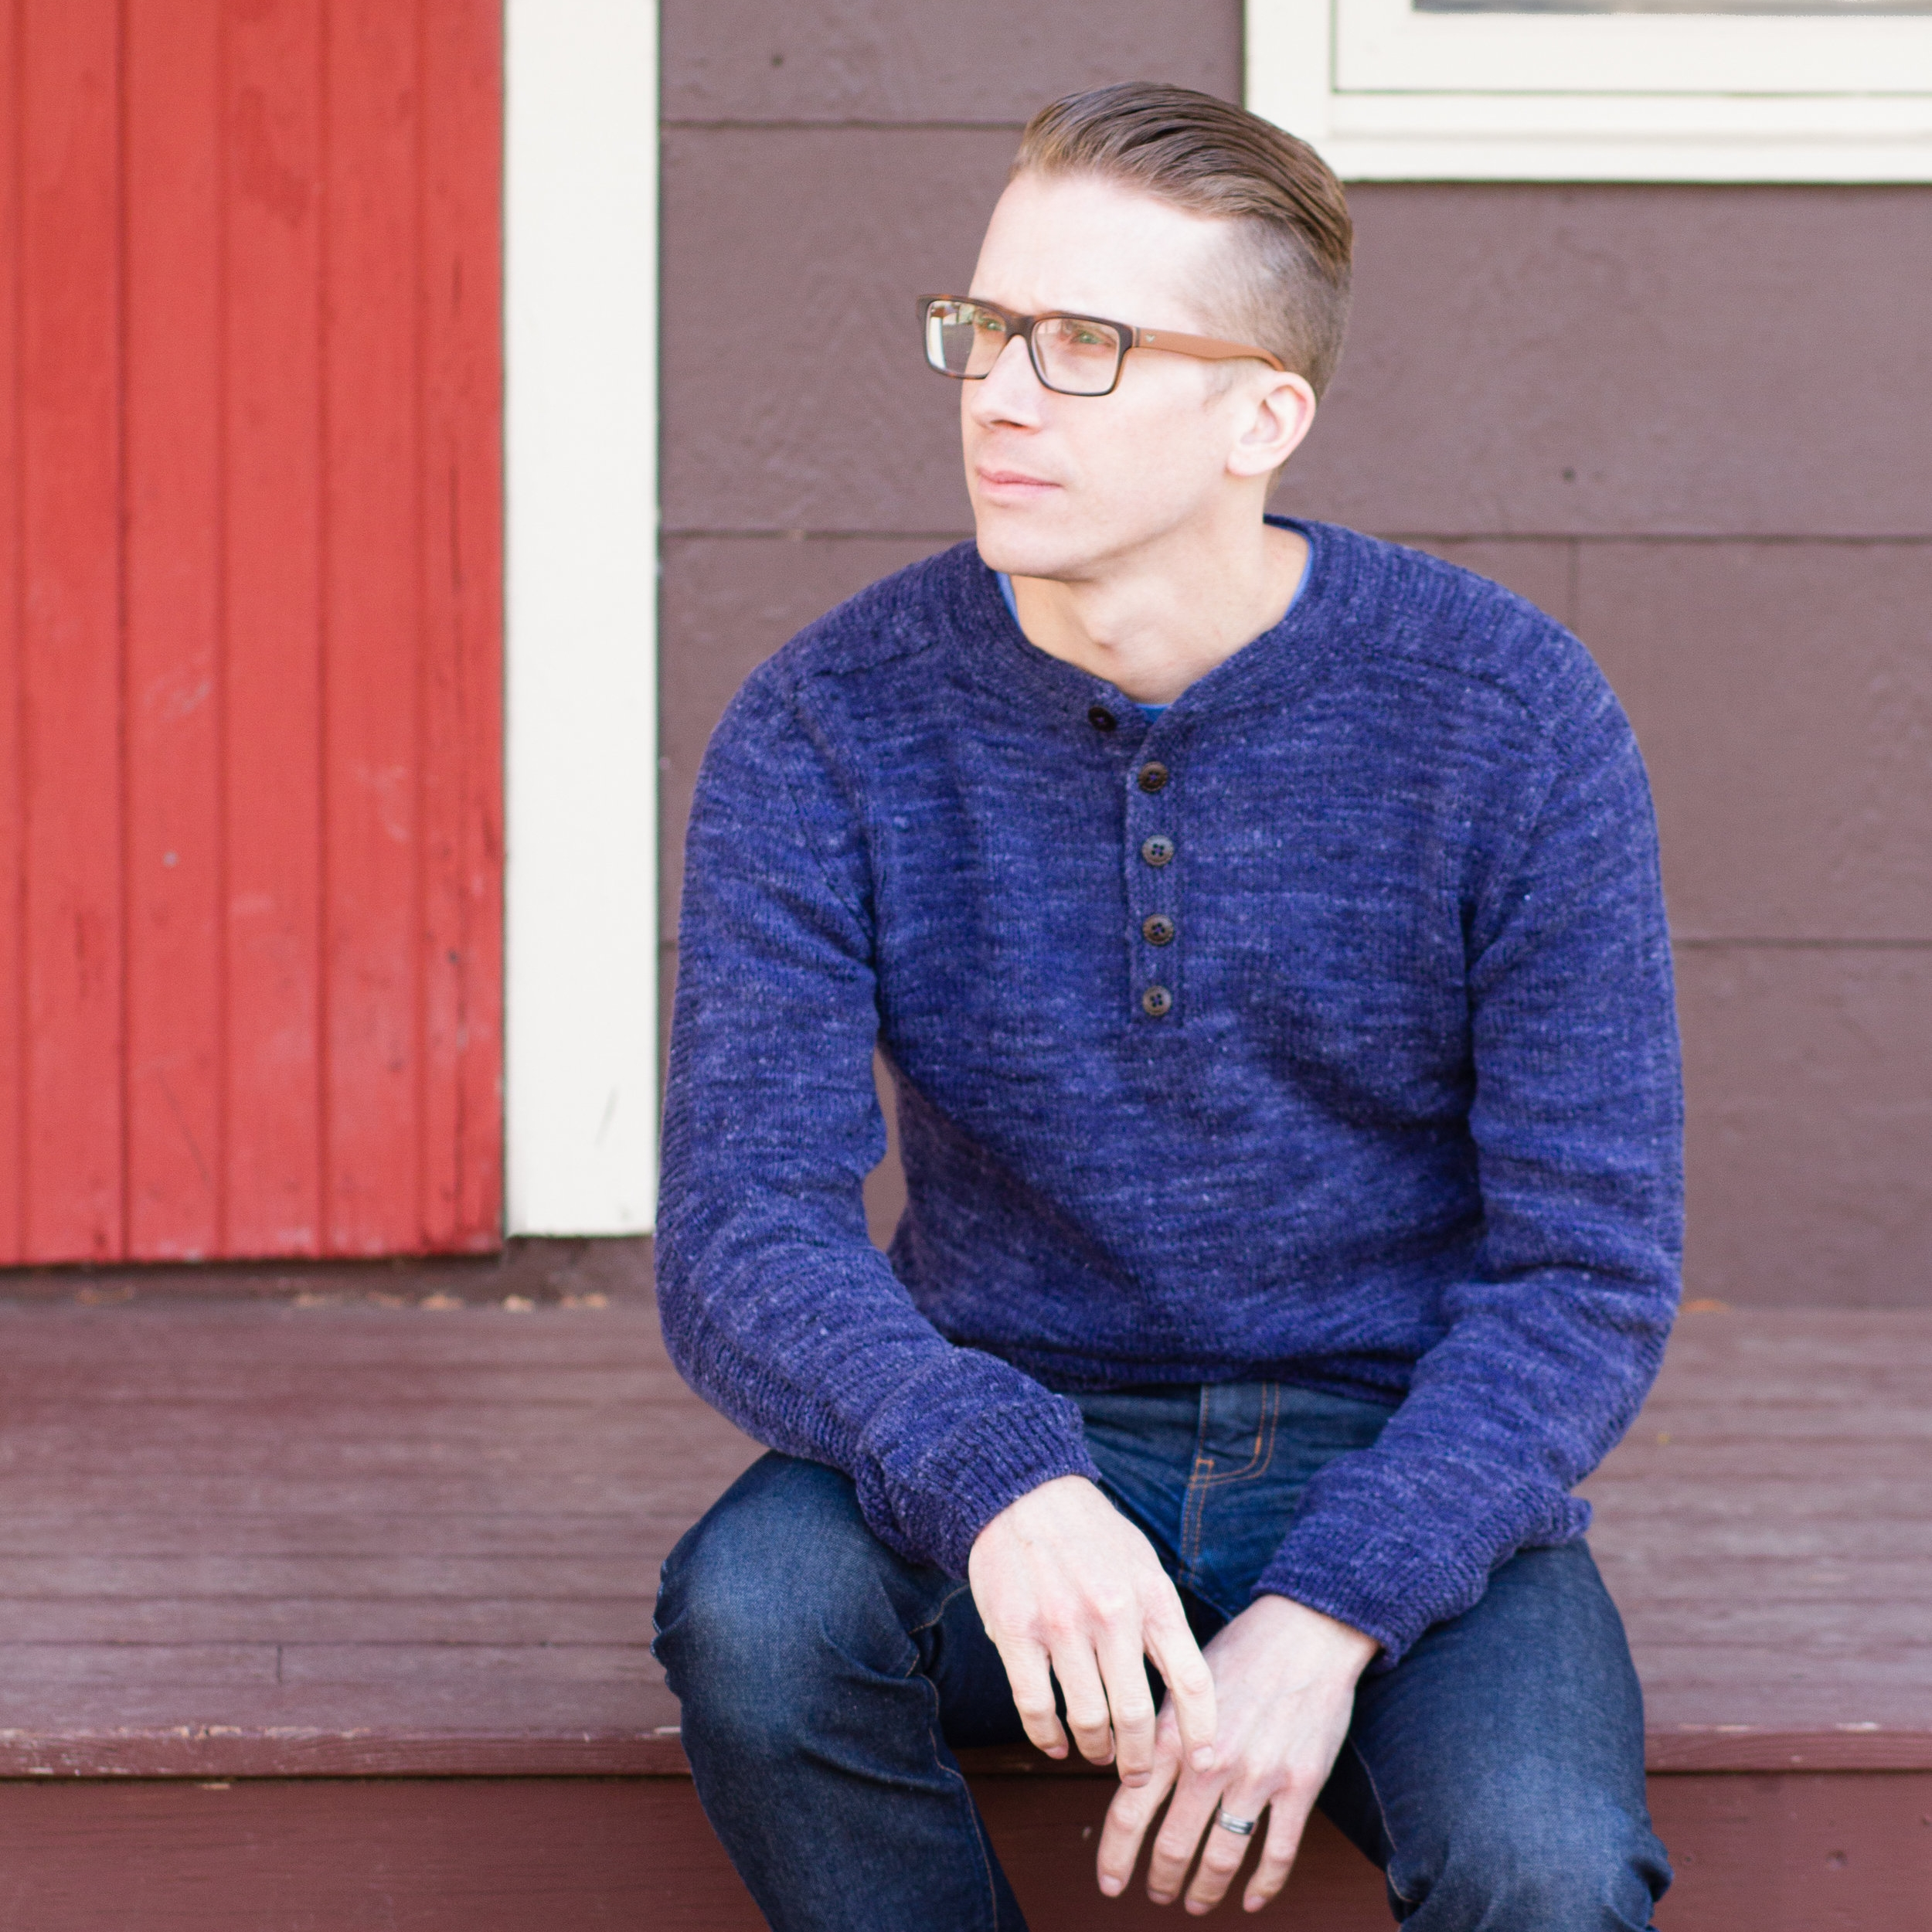 Jason's nubby textured Rushaan sweater in Mountain Meadow Cody